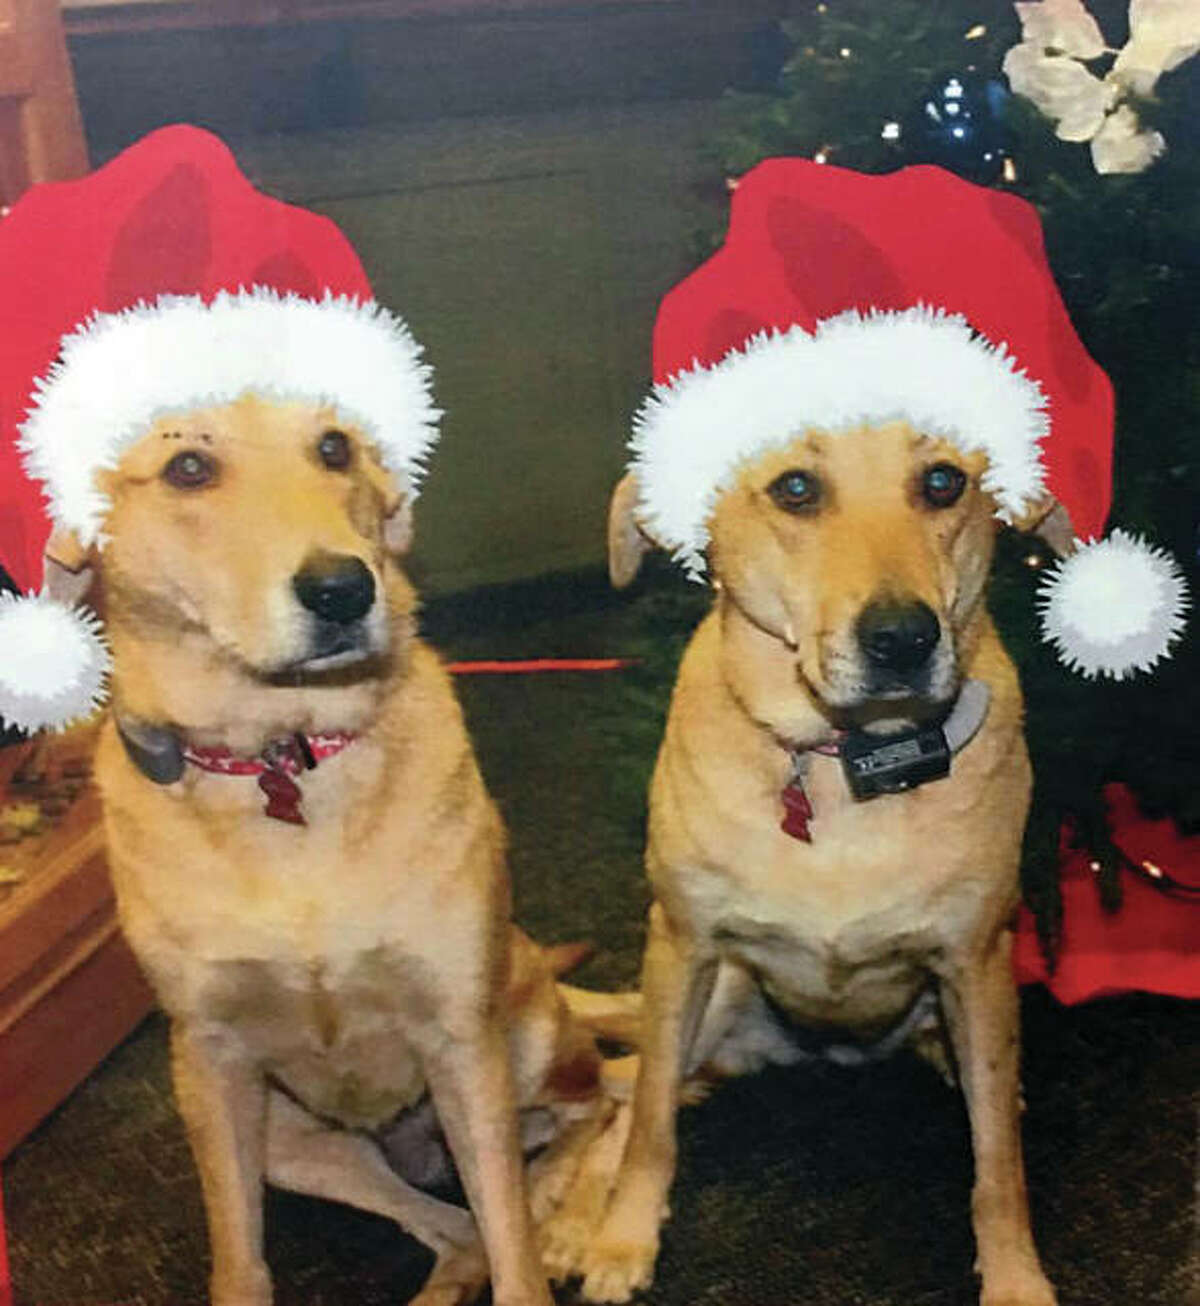 Canine sisters, golden retrievers Thora and Izzie, from 5A's in Godfrey, Illinois, are thriving at the Minnesota Veterans Home in Luverne, Minnesota, where they are pictured and veterans and staff have embraced the pets for comfort and companionship.